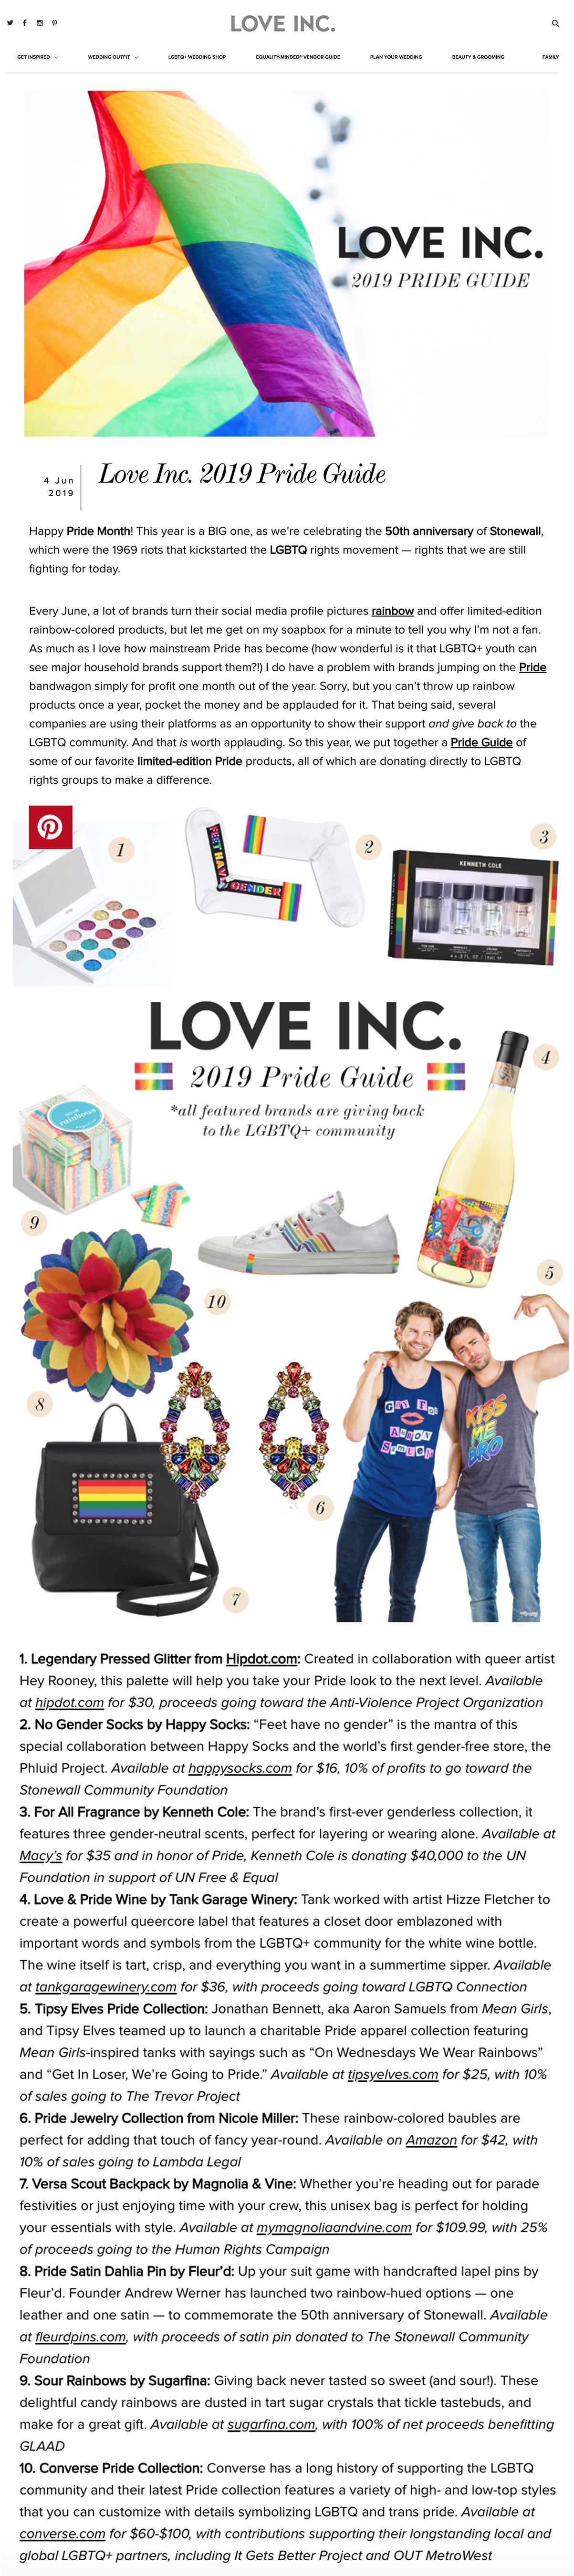 LOVE Inc. 2019 Pride Guide featuring Fleur'd Pins.jpg